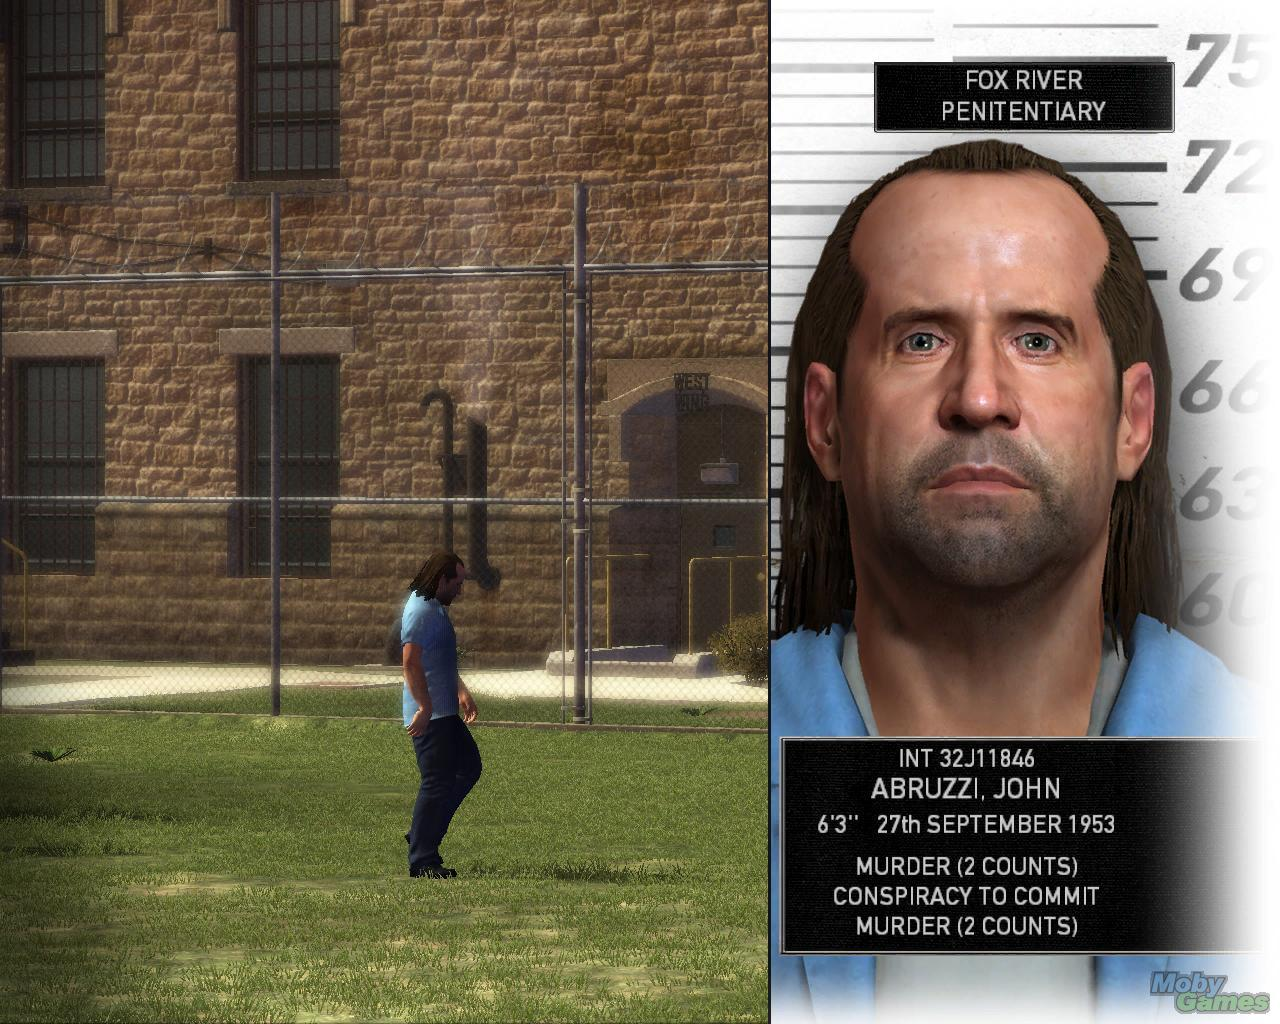 John Abruzzi The Conspiracy Prison Break Wiki